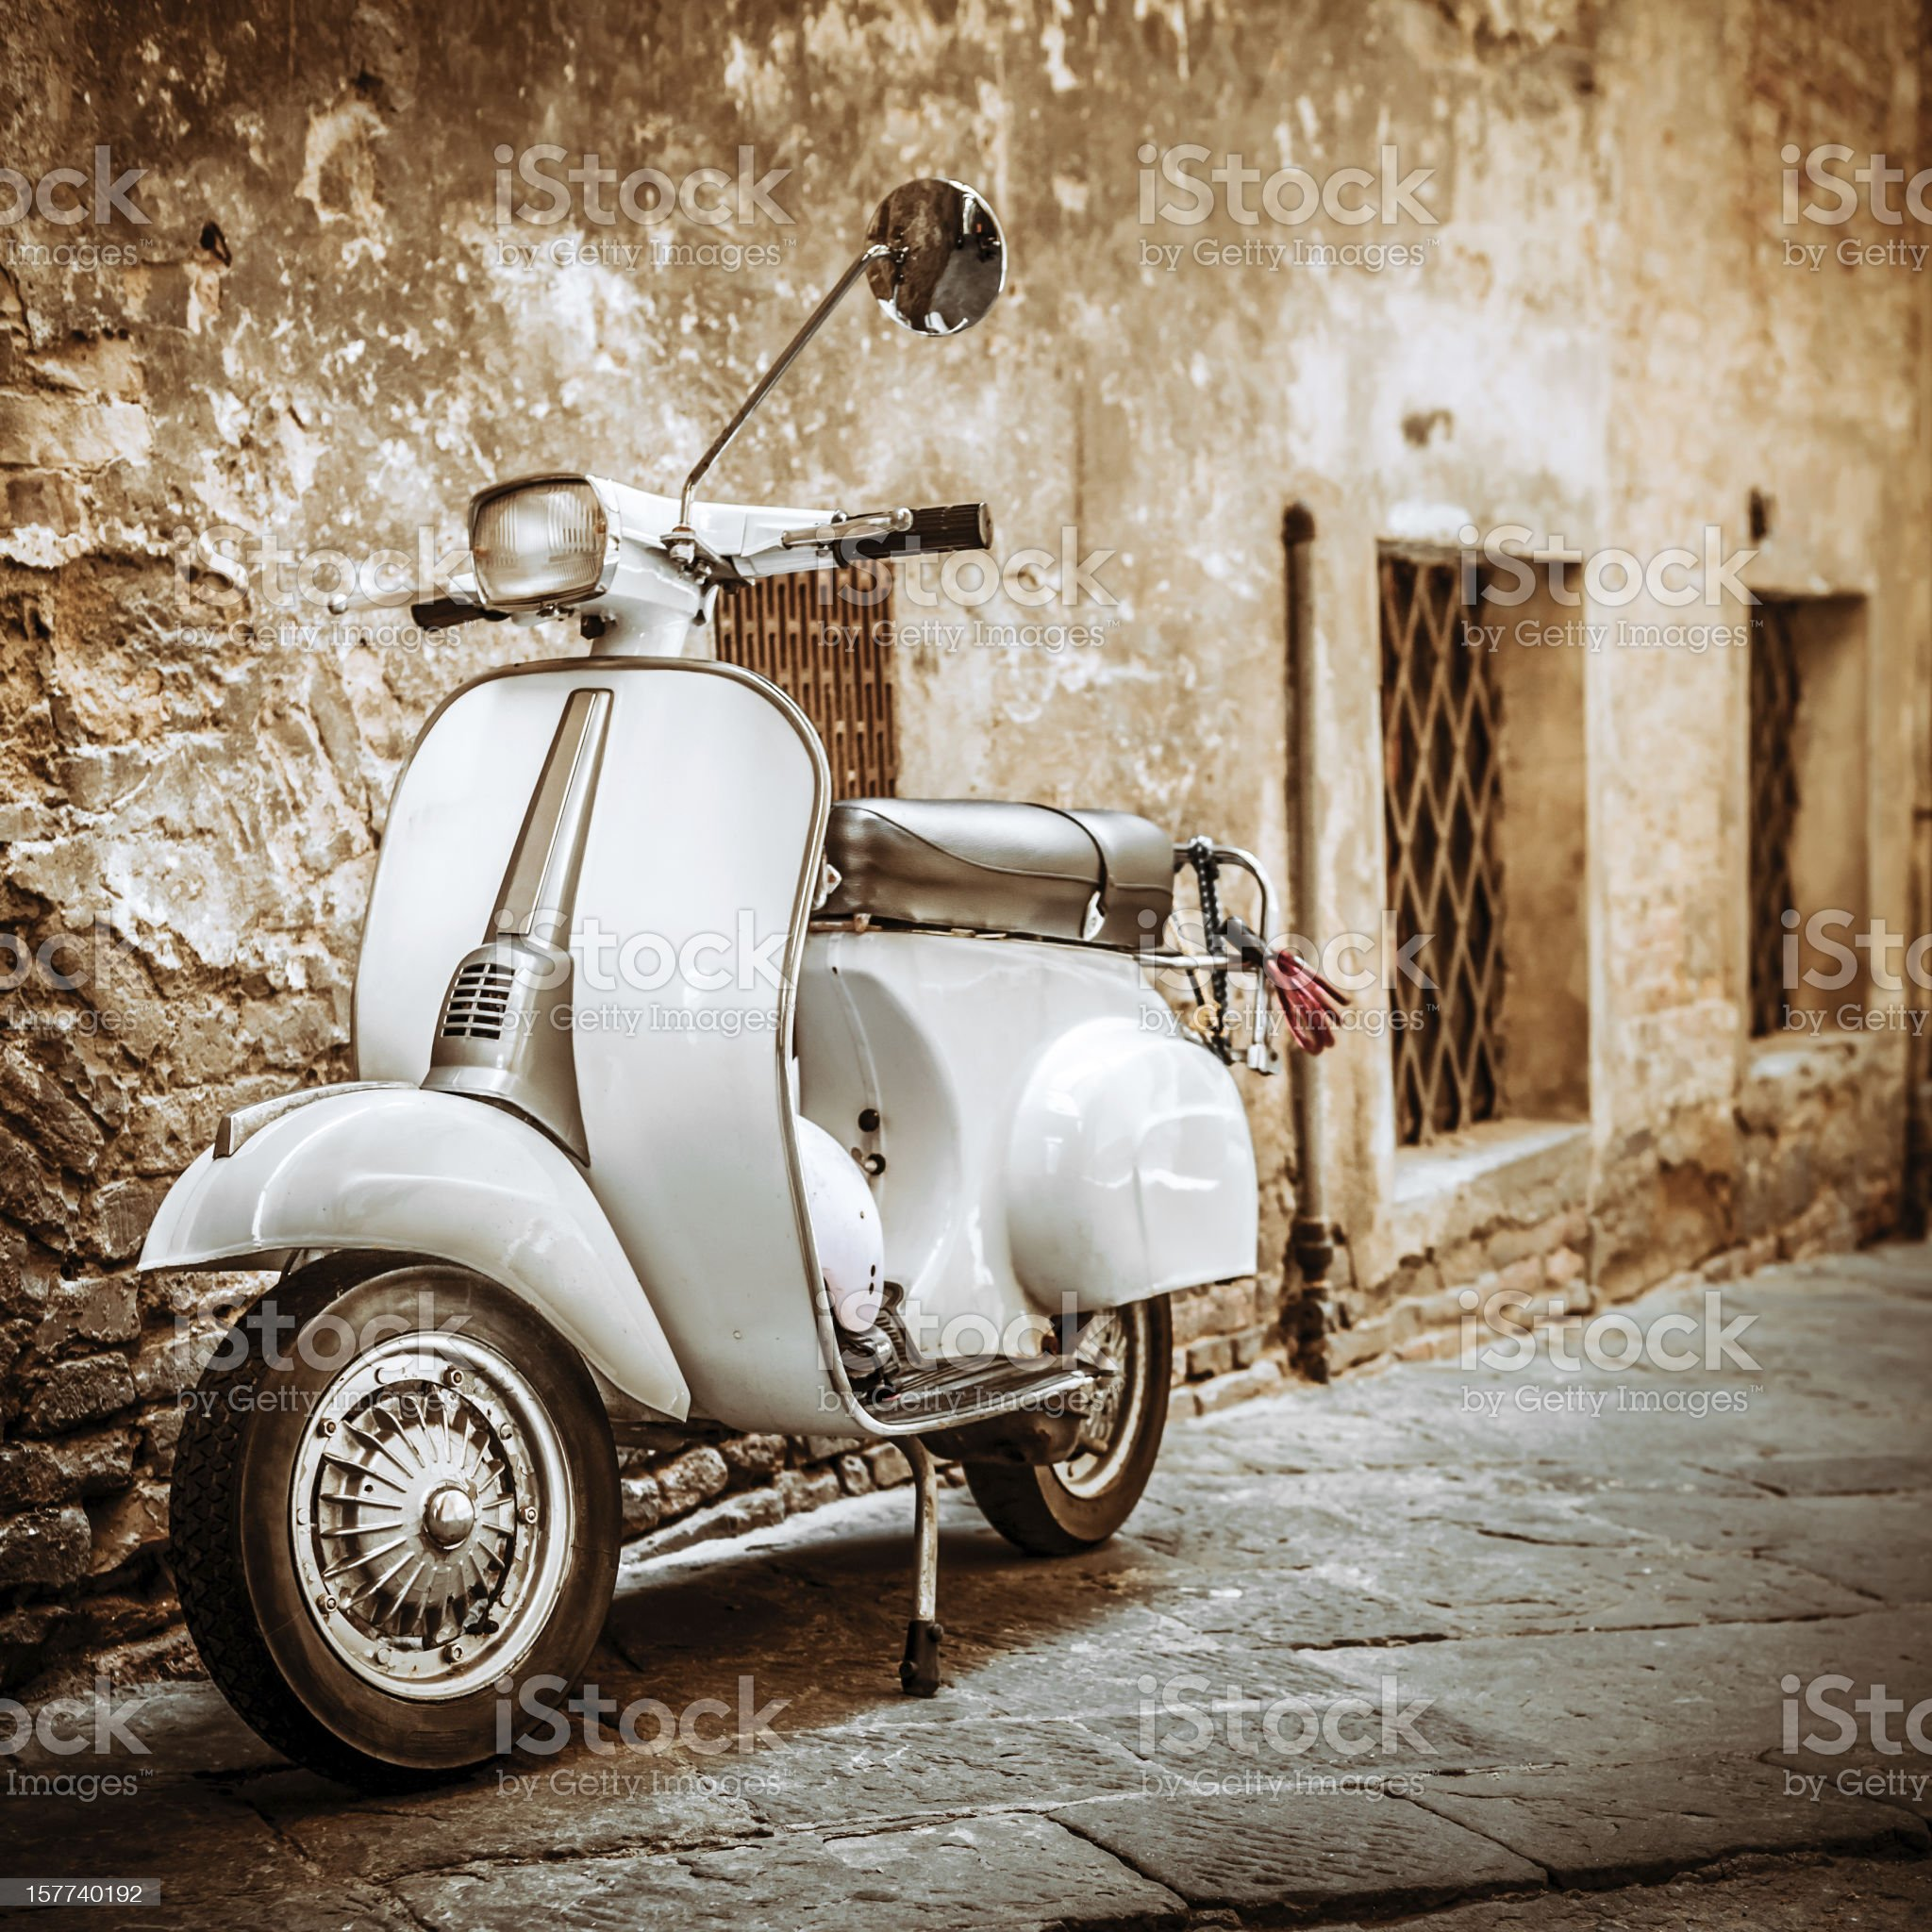 Italian Scooter in Grungy Alley, Vintage Mood royalty-free stock photo